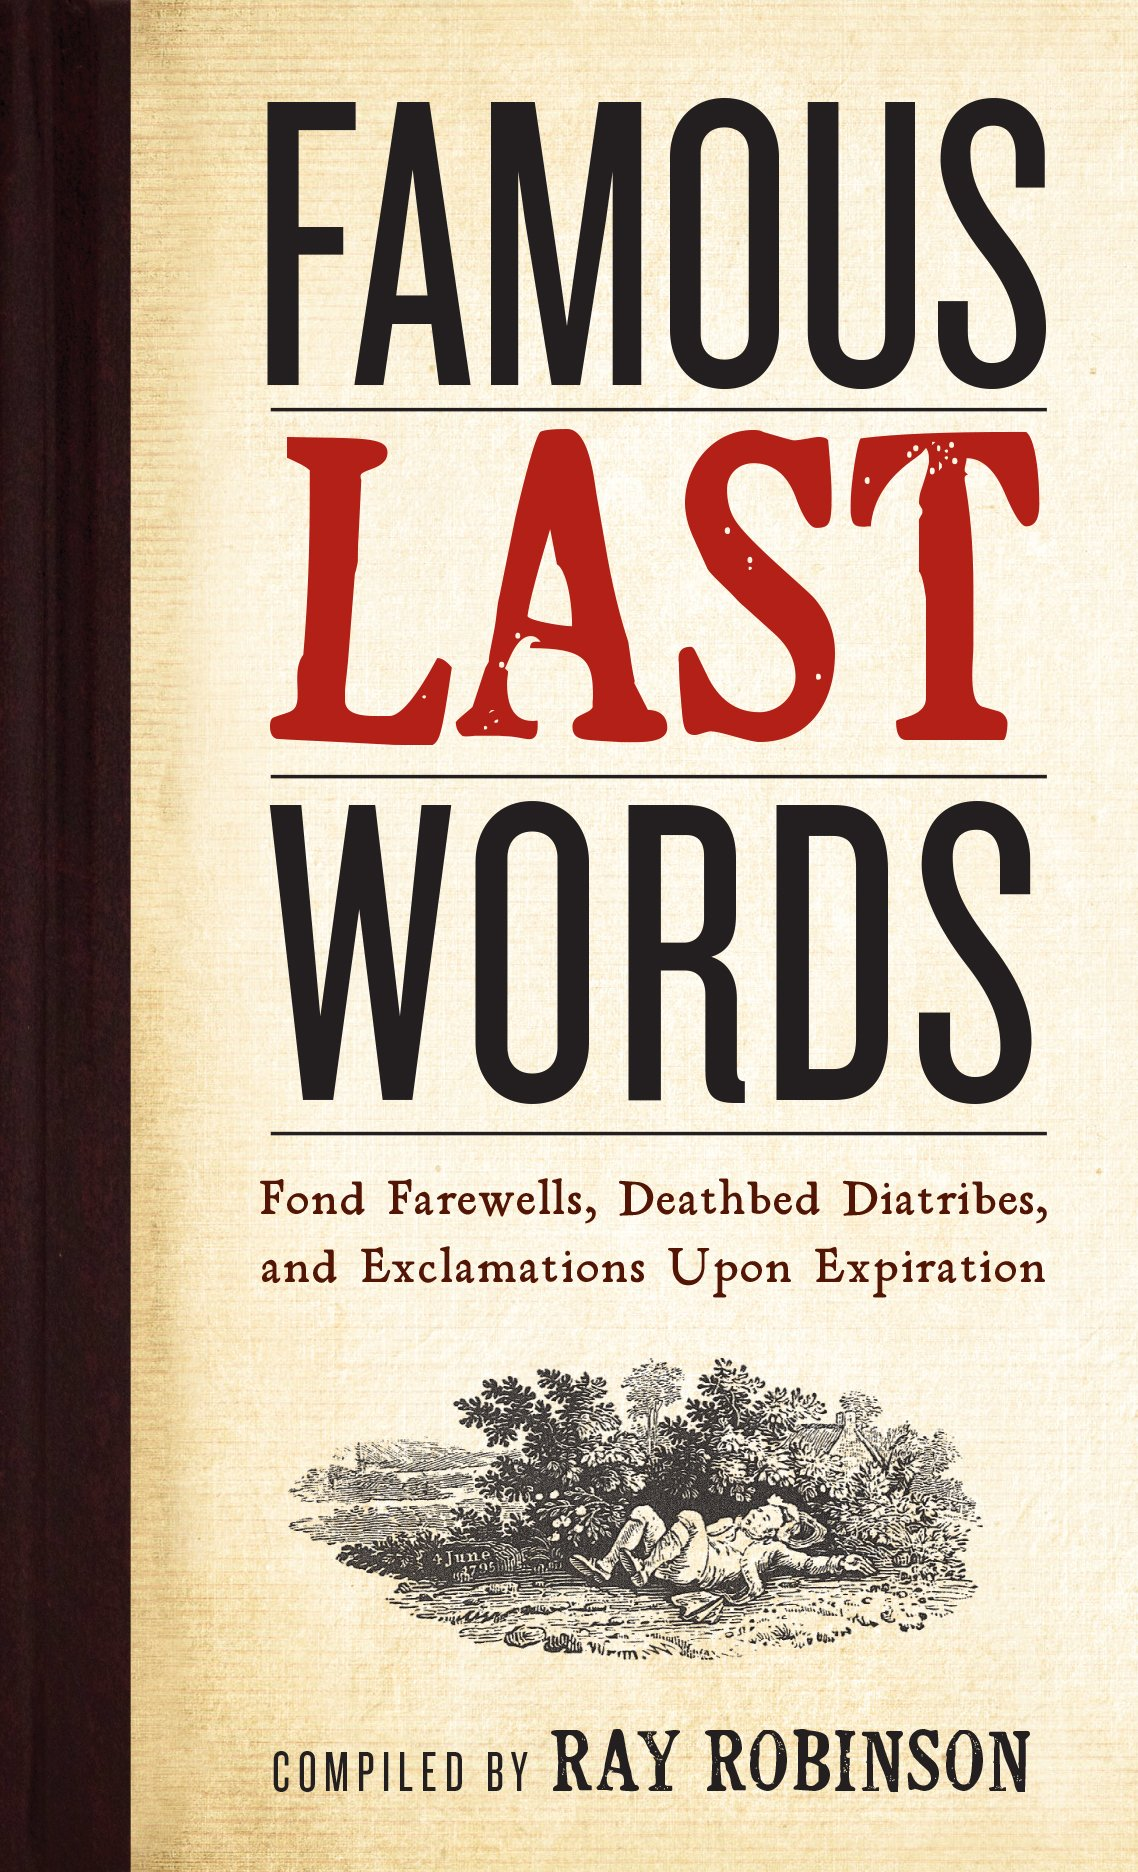 Famous Last Words, Fond Farewells, Deathbed Diatribes, and